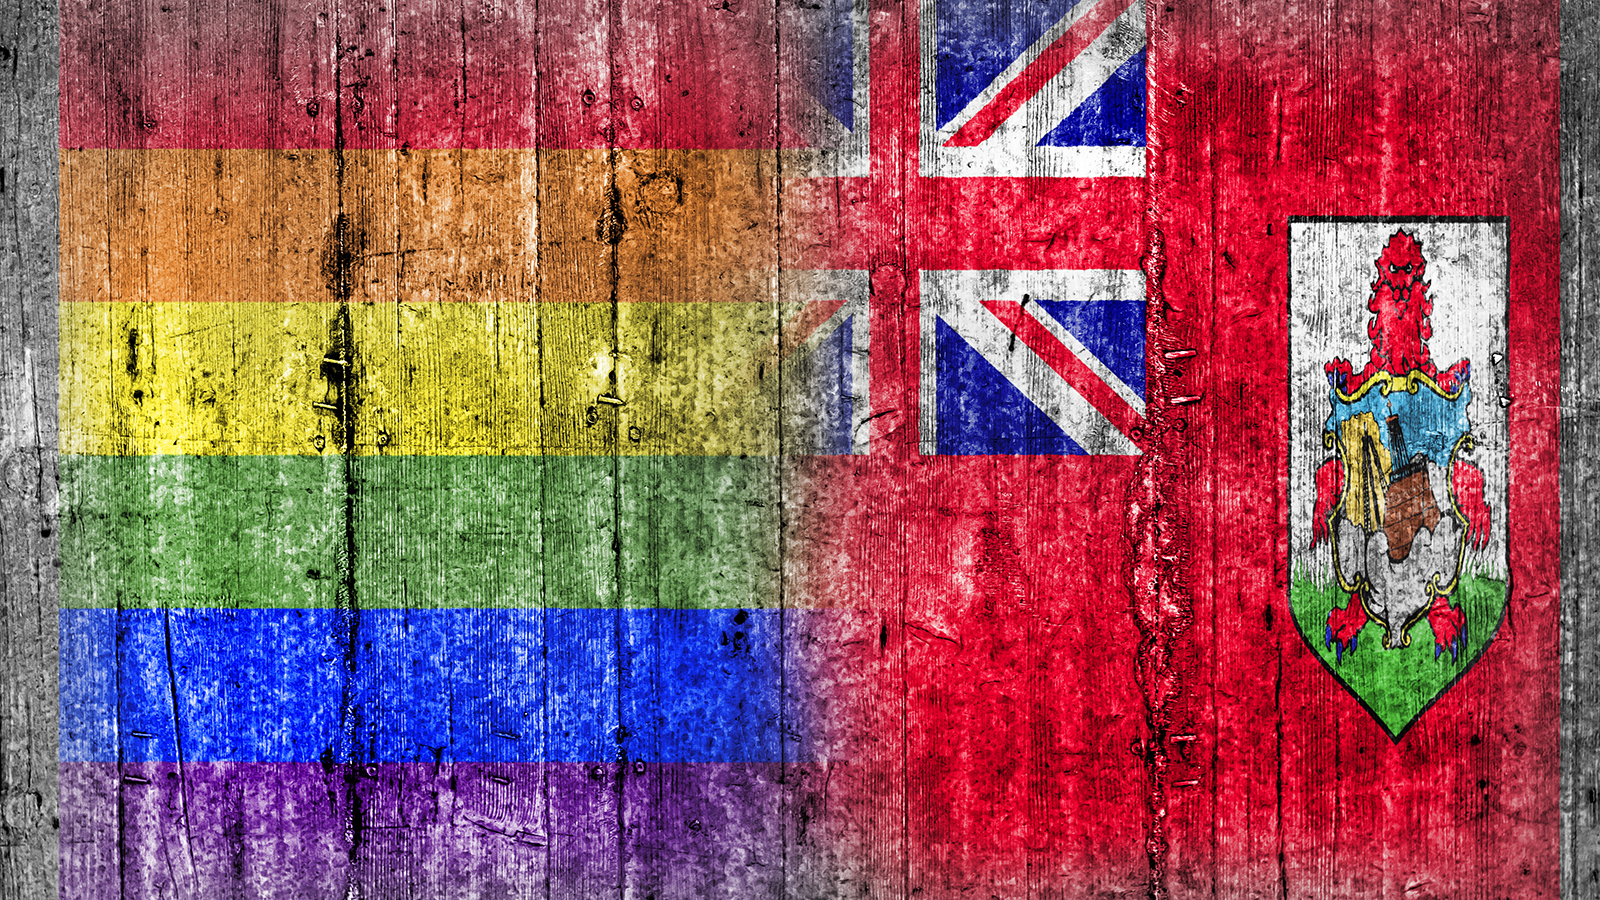 Bermuda's Government Must Recognize That Marriage Equality is Settled, Advocates Say